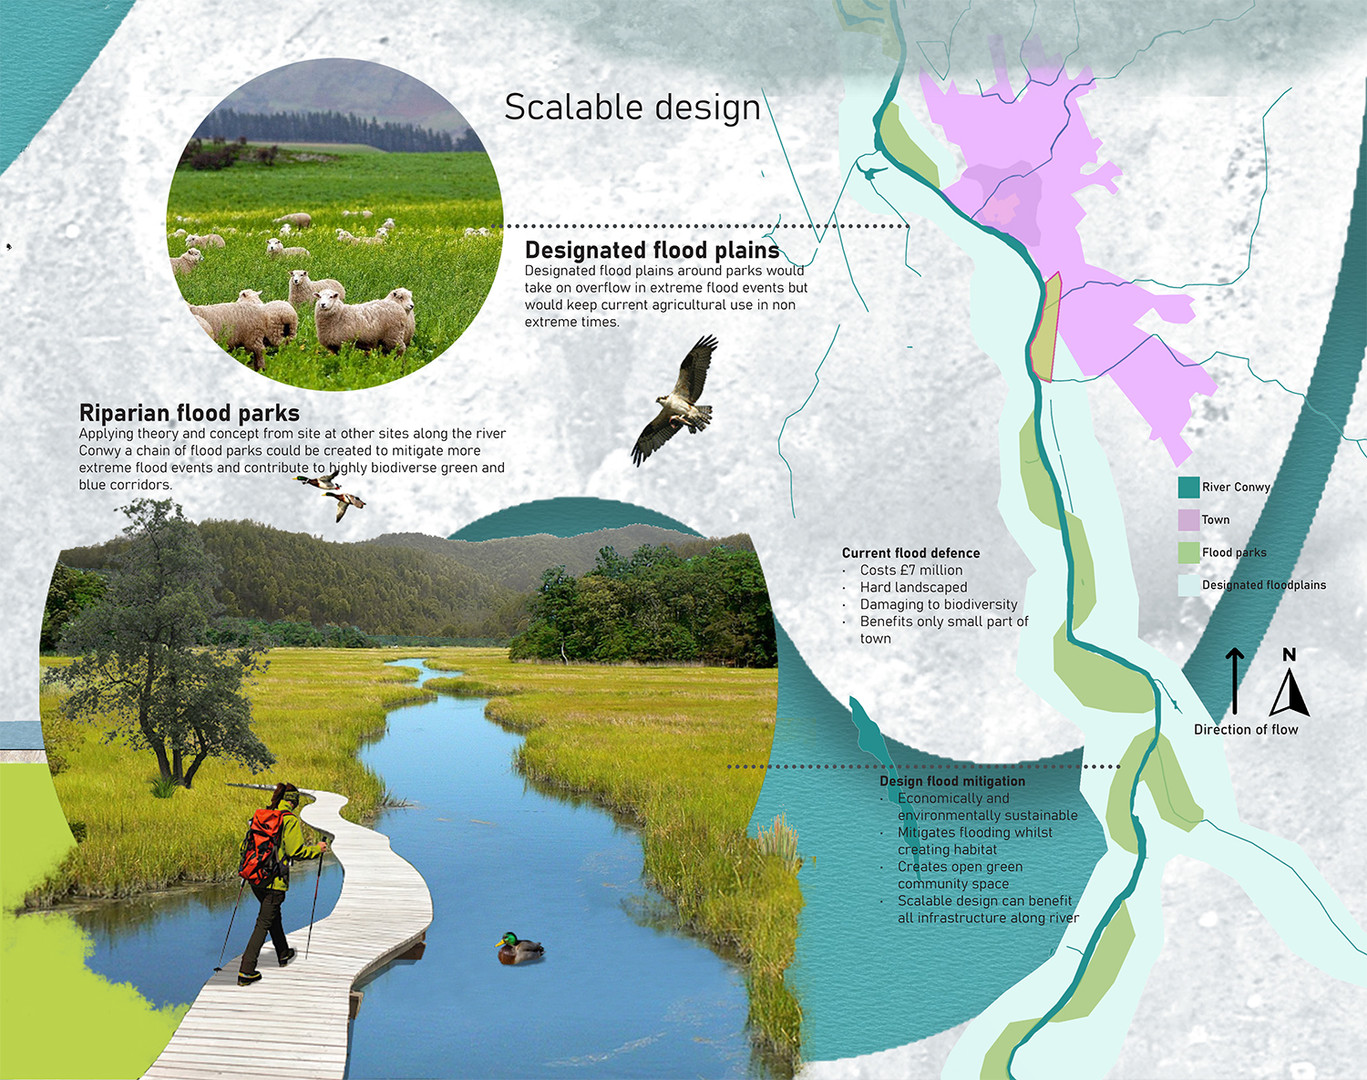 Scalable design – Creating green and blue corridors, mitigating flood sustainably